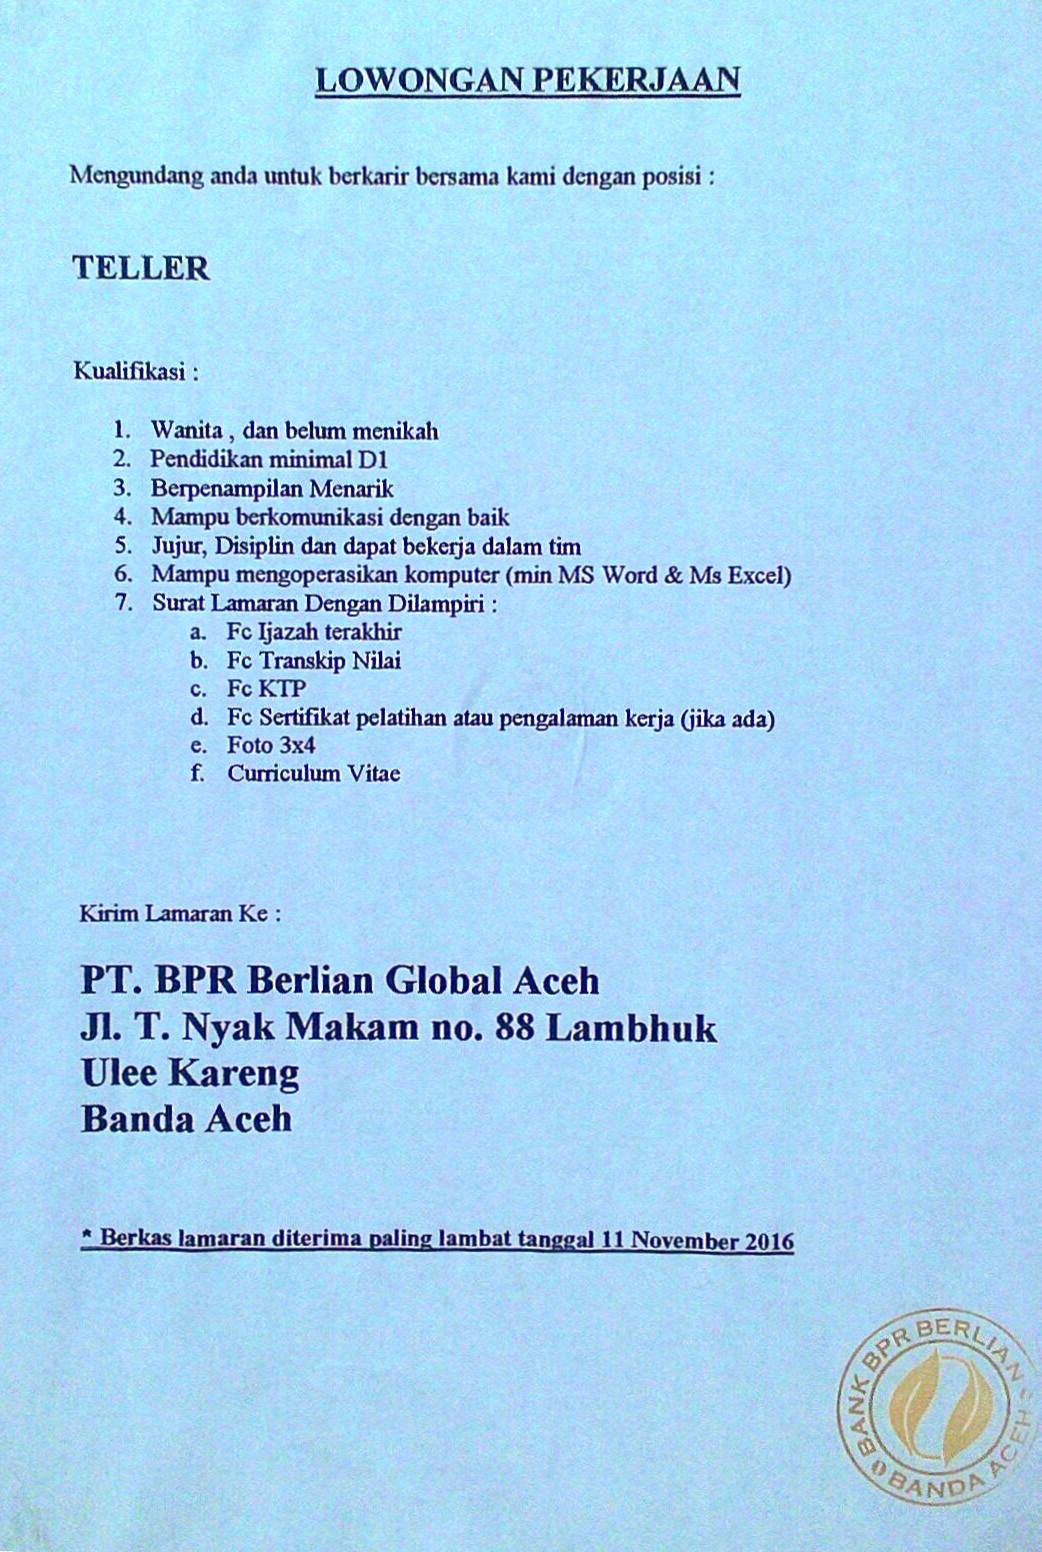 PT.BPR BERLIAN GLOBAL ACEH